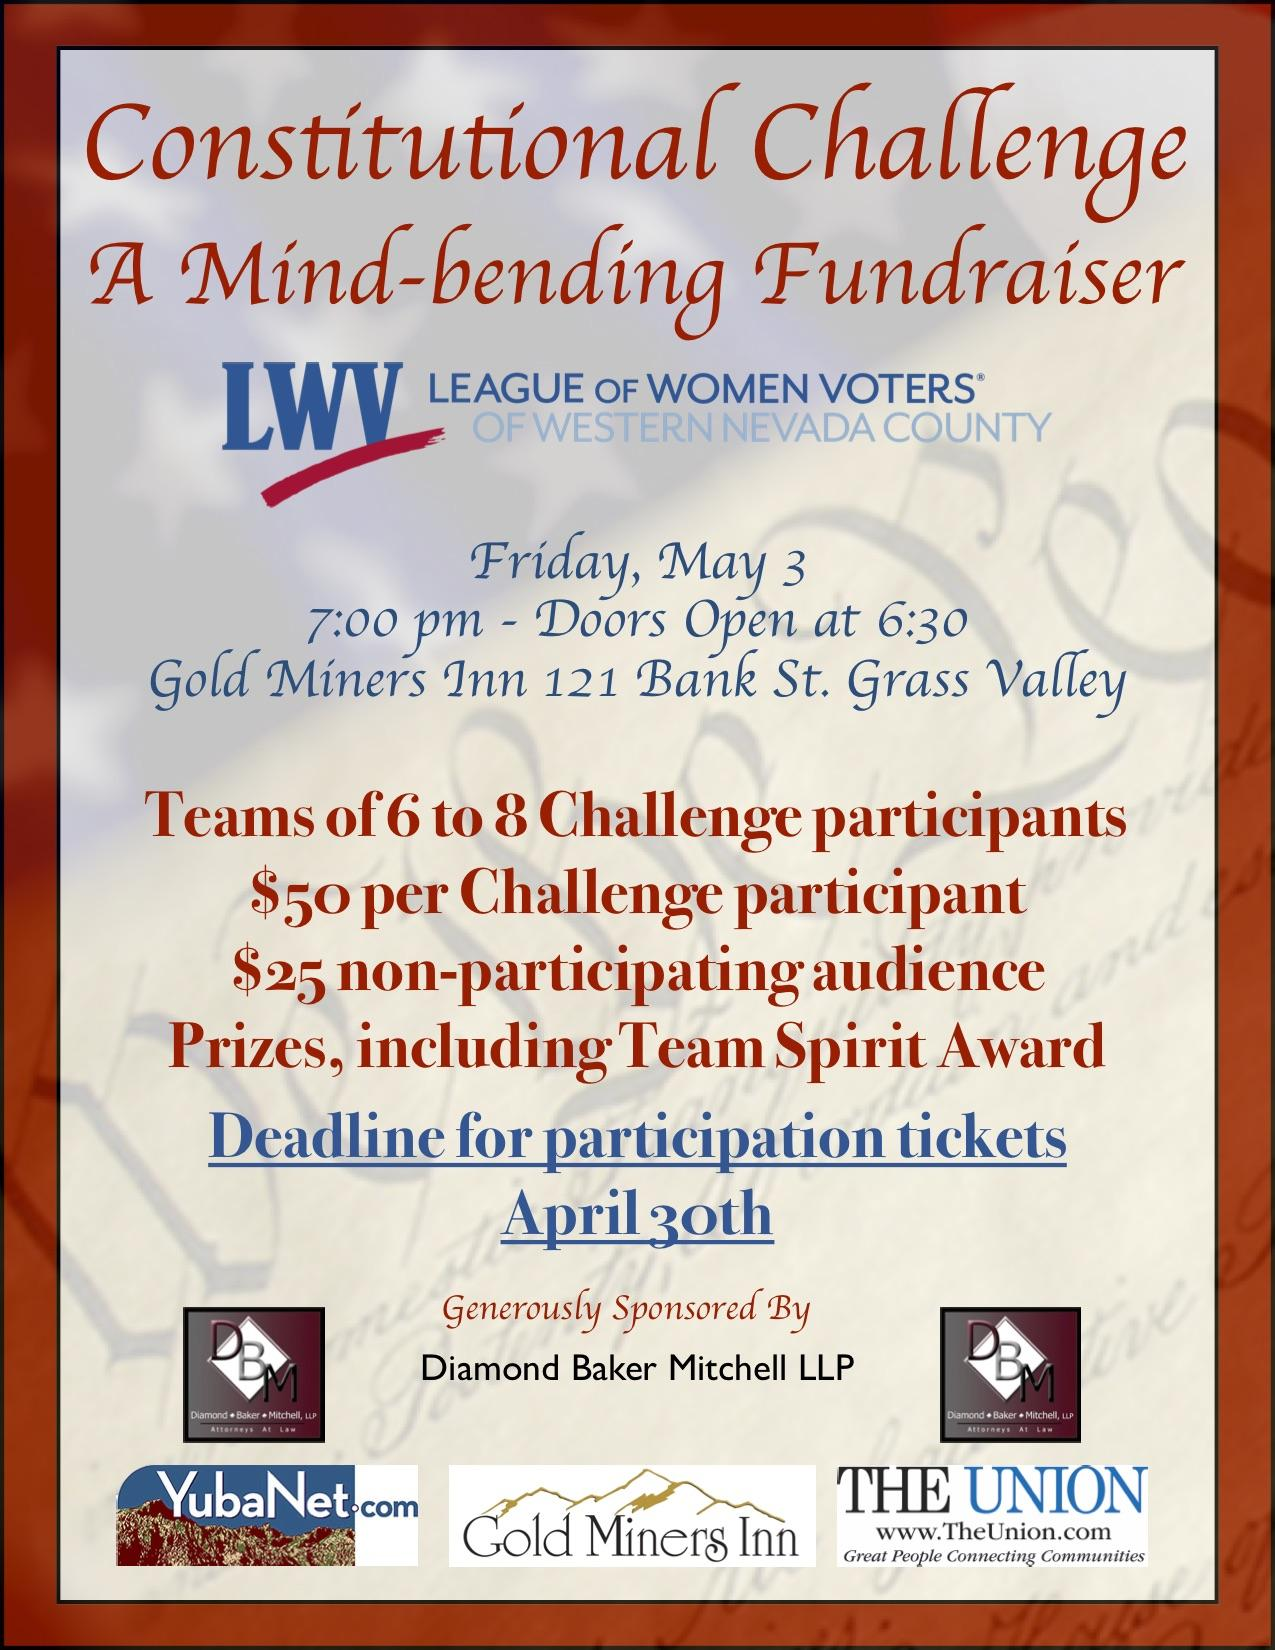 Constitutional Challenge Fundraiser